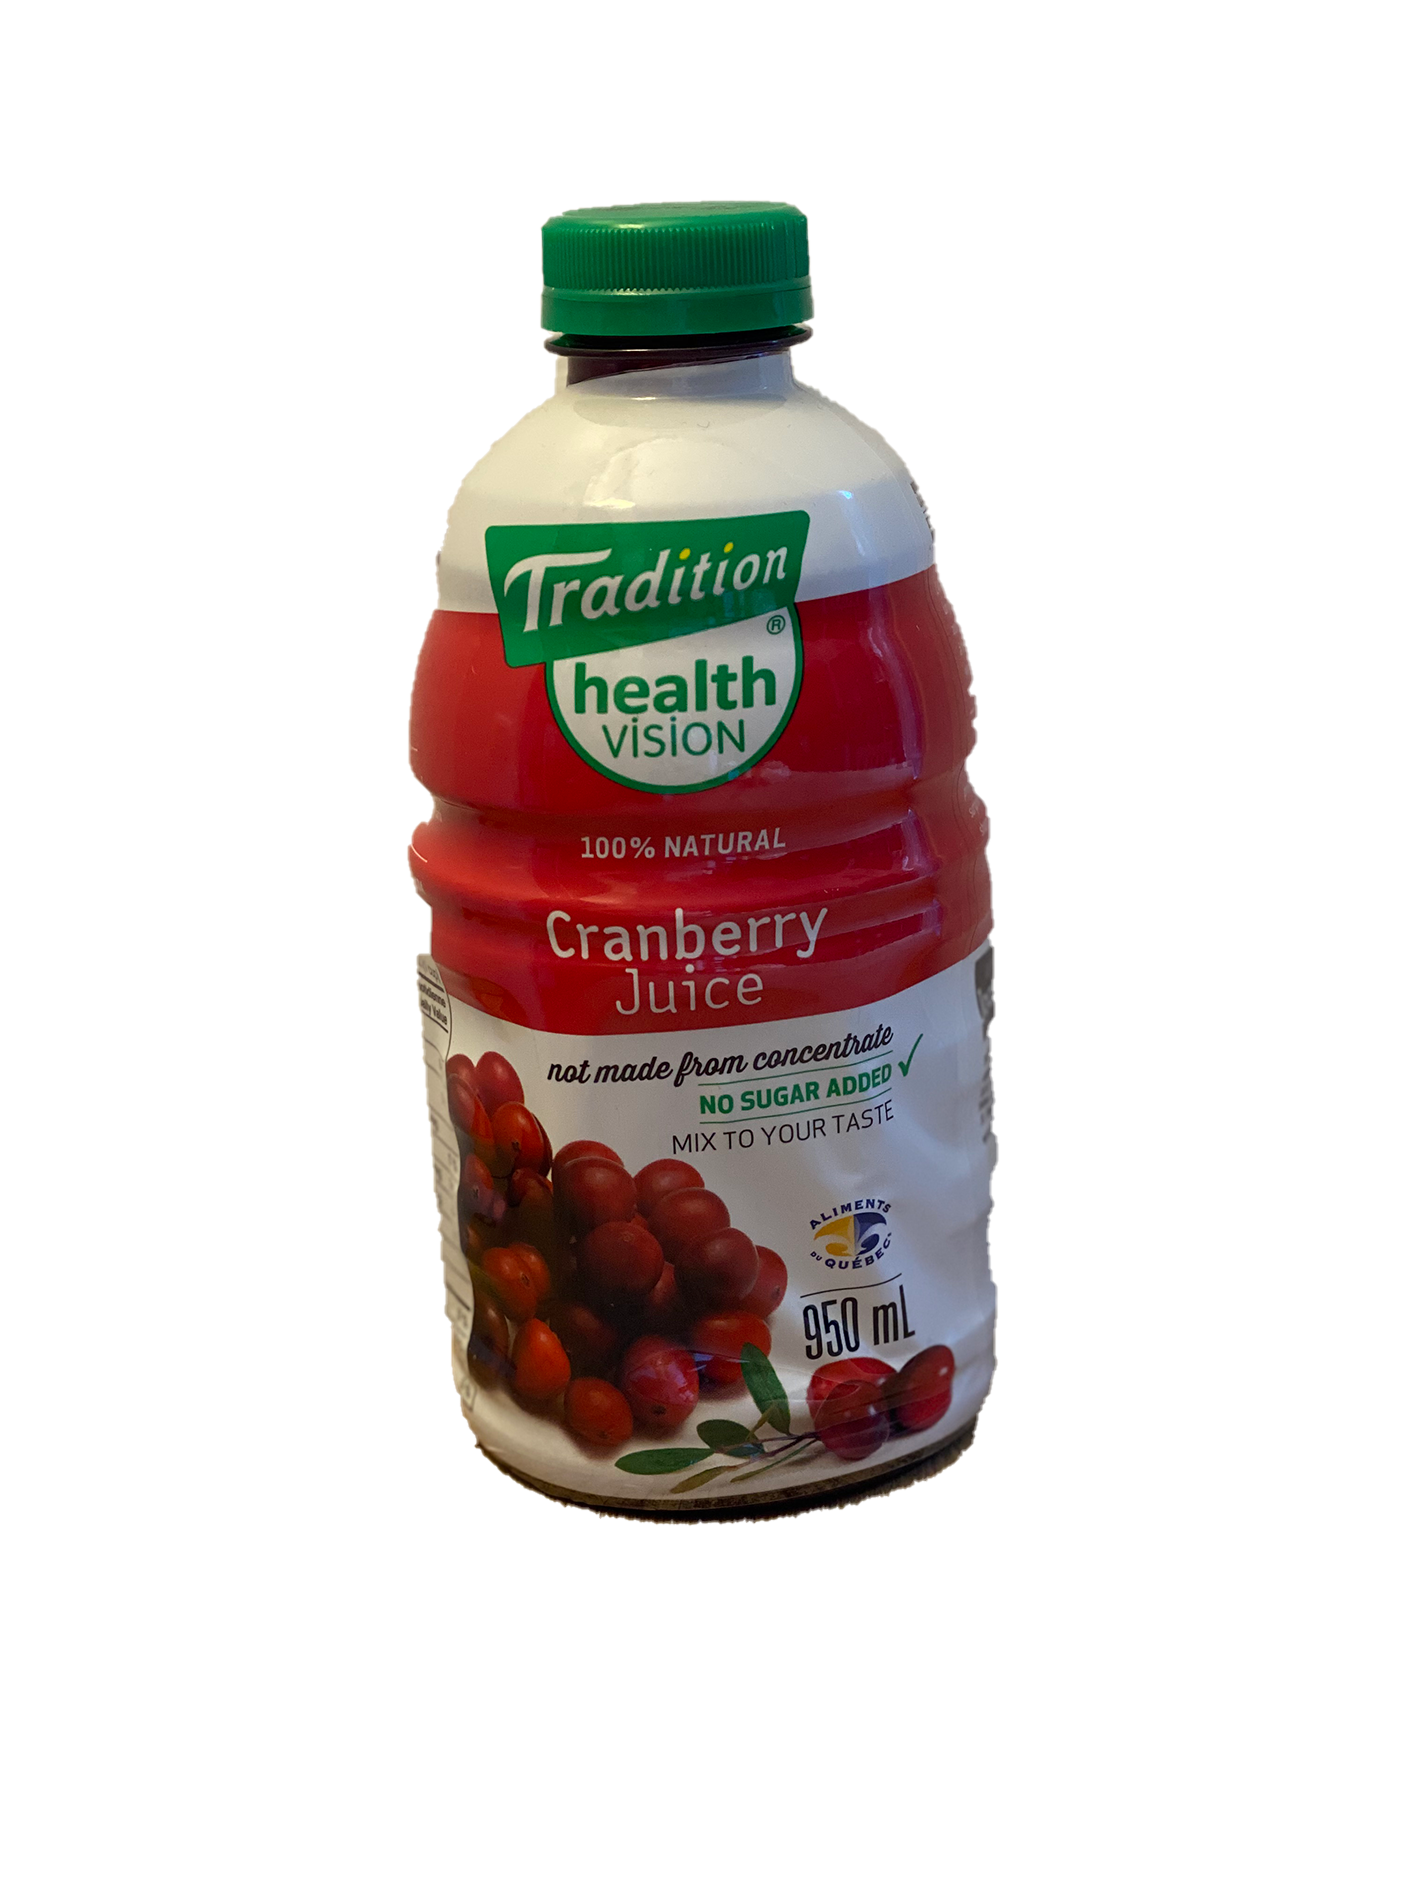 Pack 6 Condensed Cranberry juice (6 x 950ml)